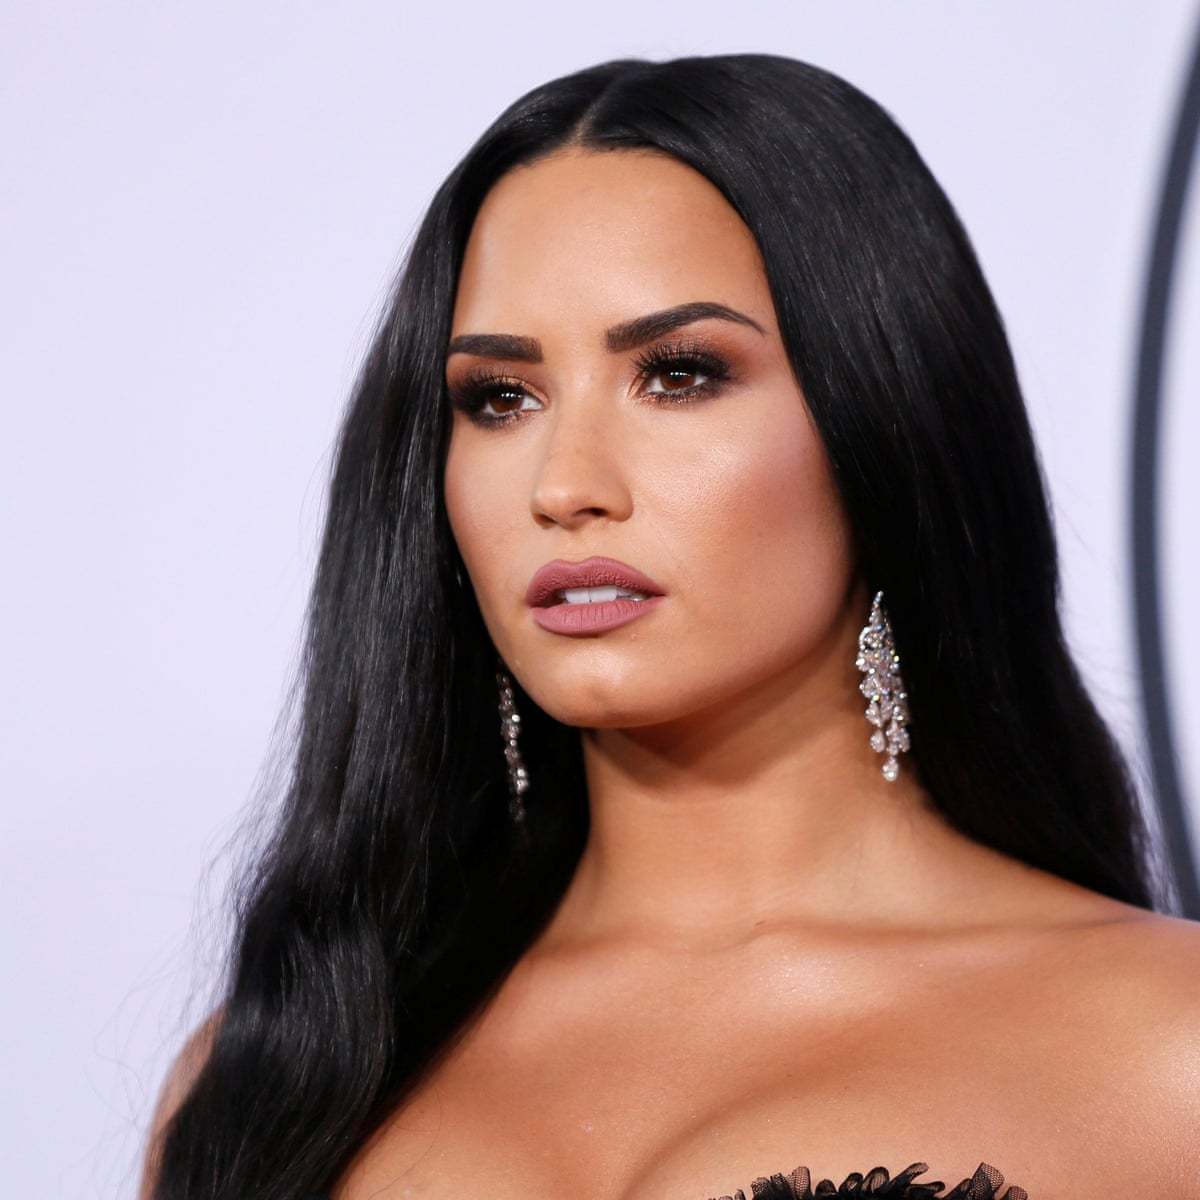 I wasn't ready to get sober': how Demi Lovato faces her demons squarely |  Music | The Guardian